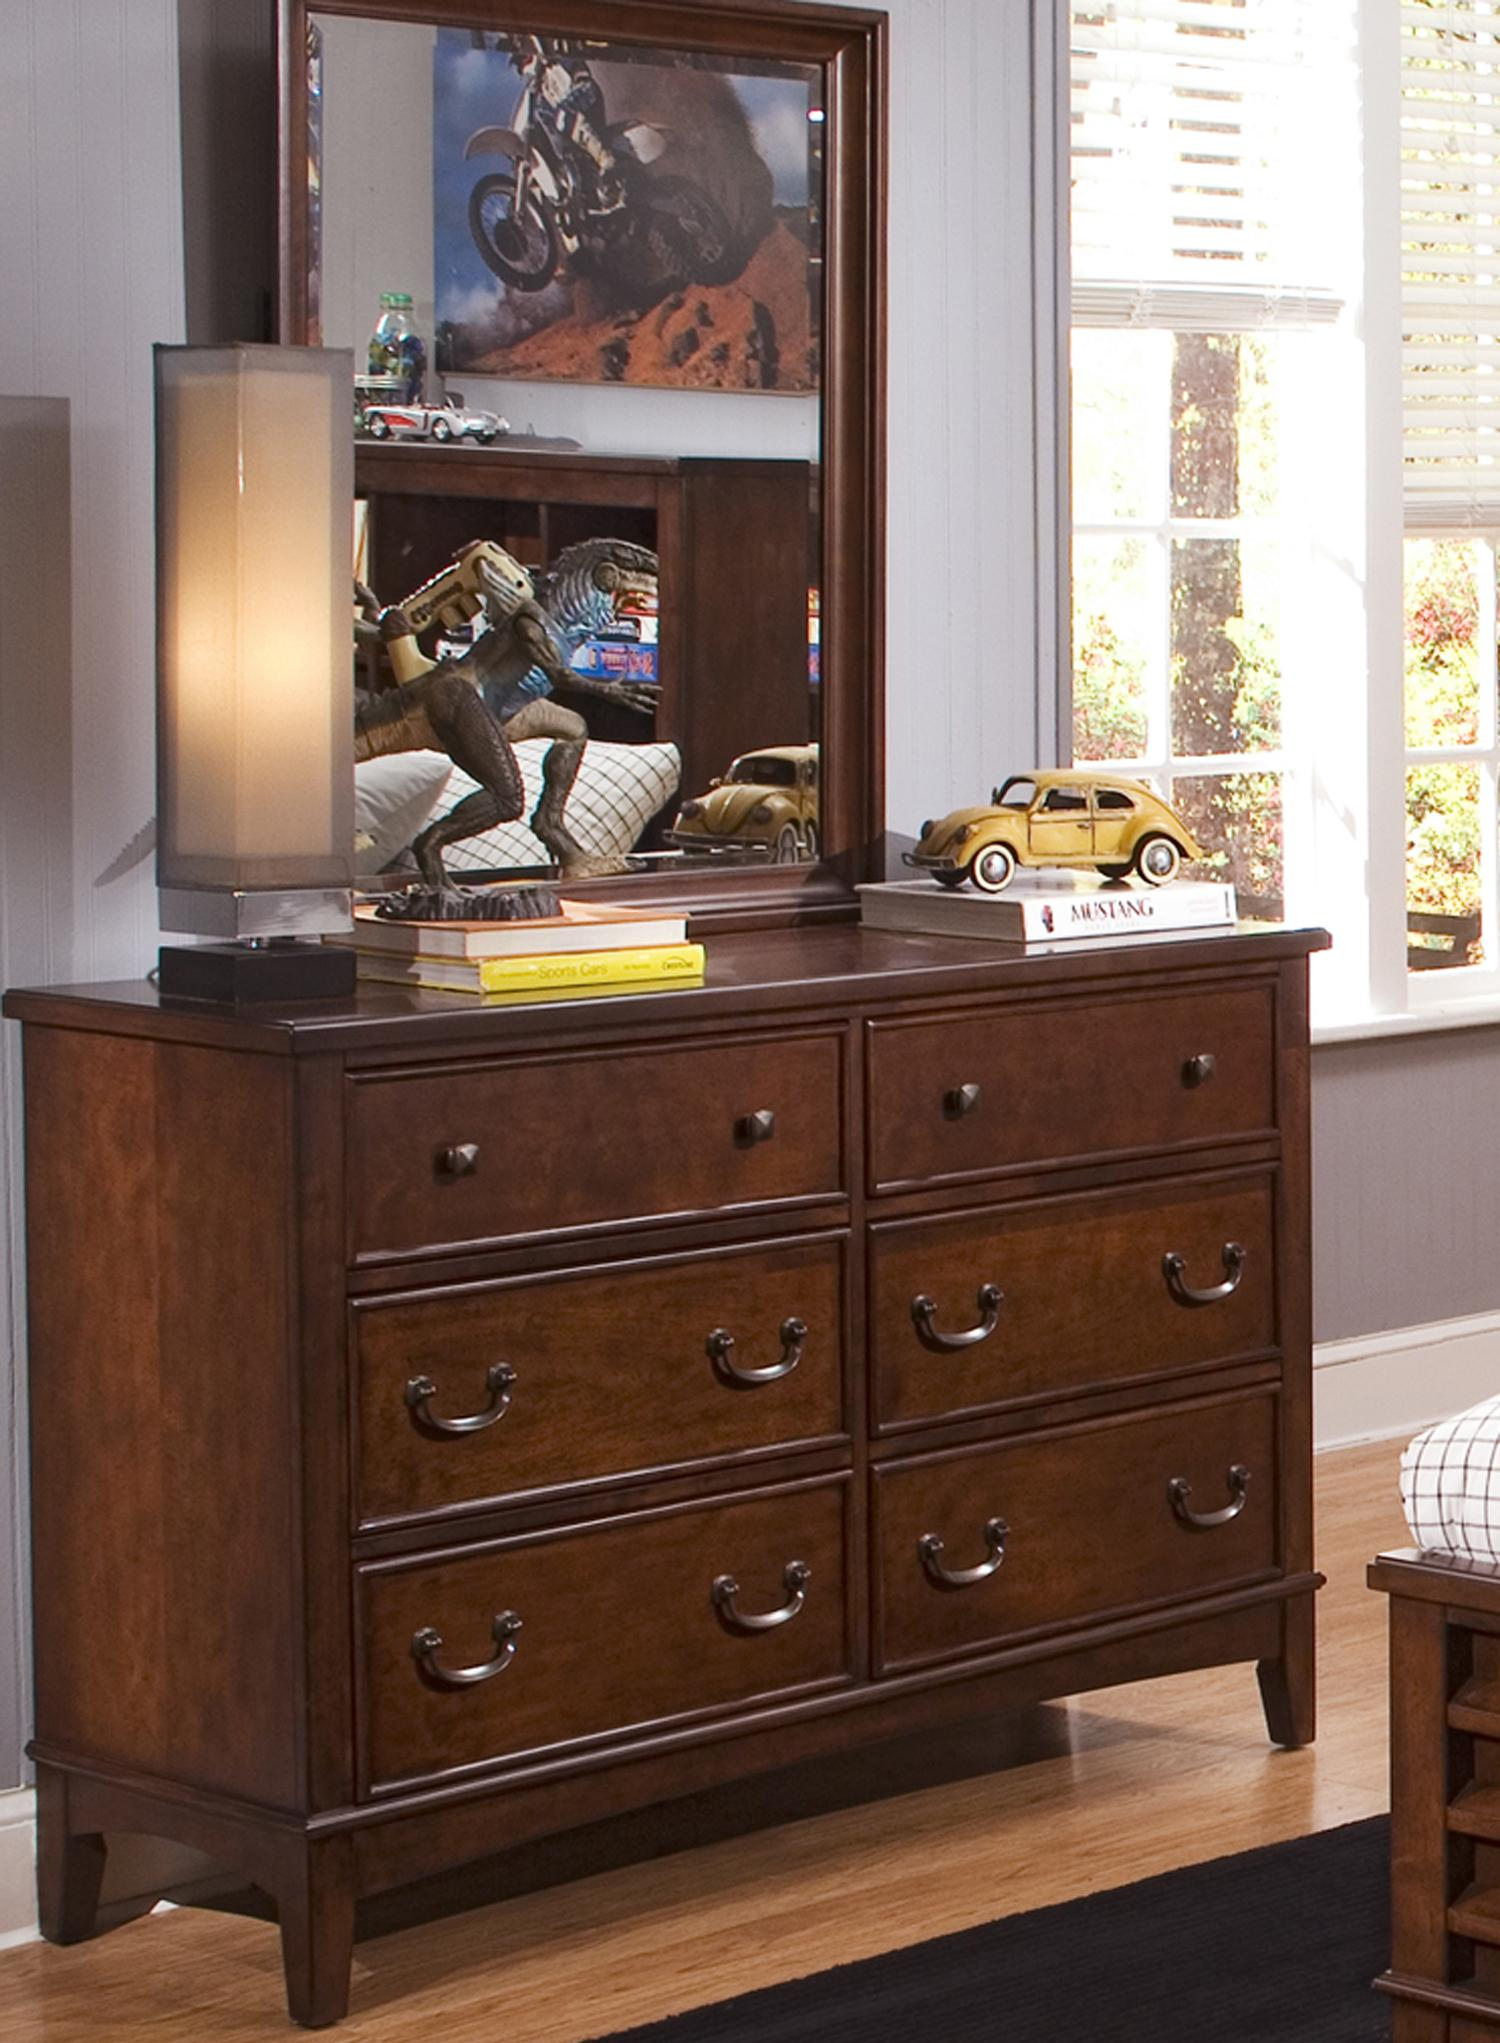 Liberty Furniture Chelsea Square Youth 6 Drawer Double Dresser Johnny Janosik Dressers